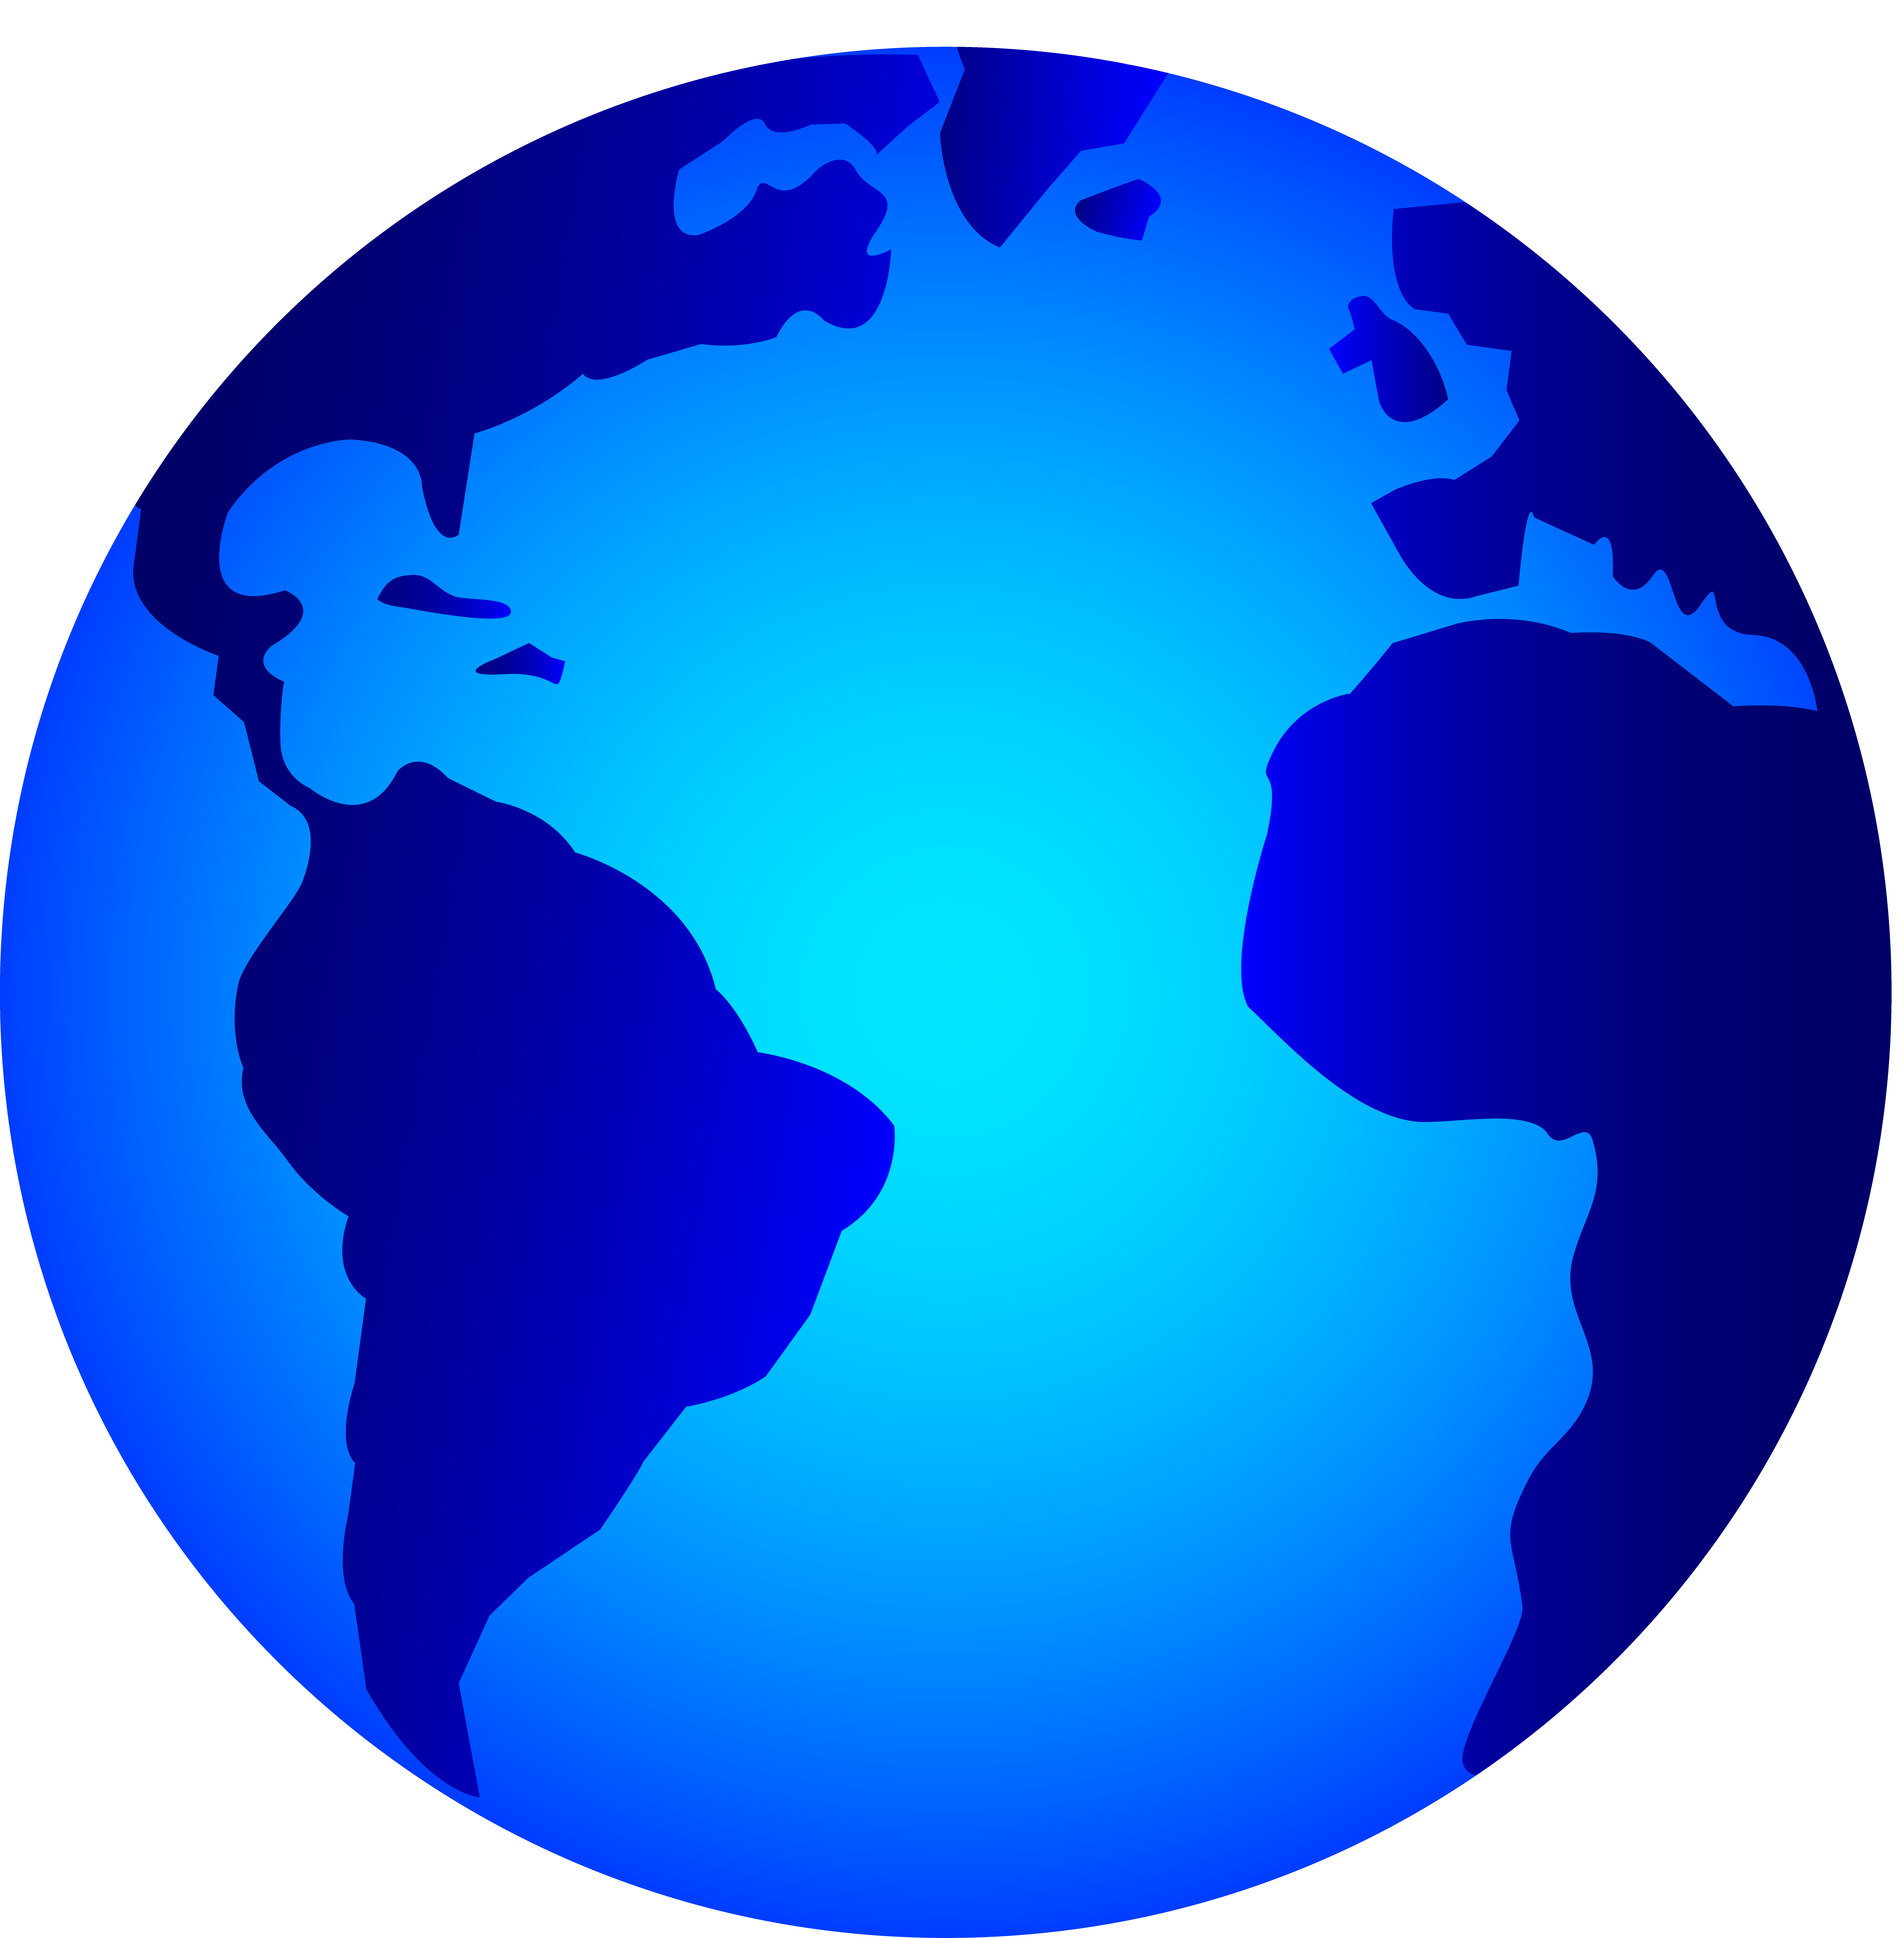 Real earth logo . Air clipart global wind image transparent stock